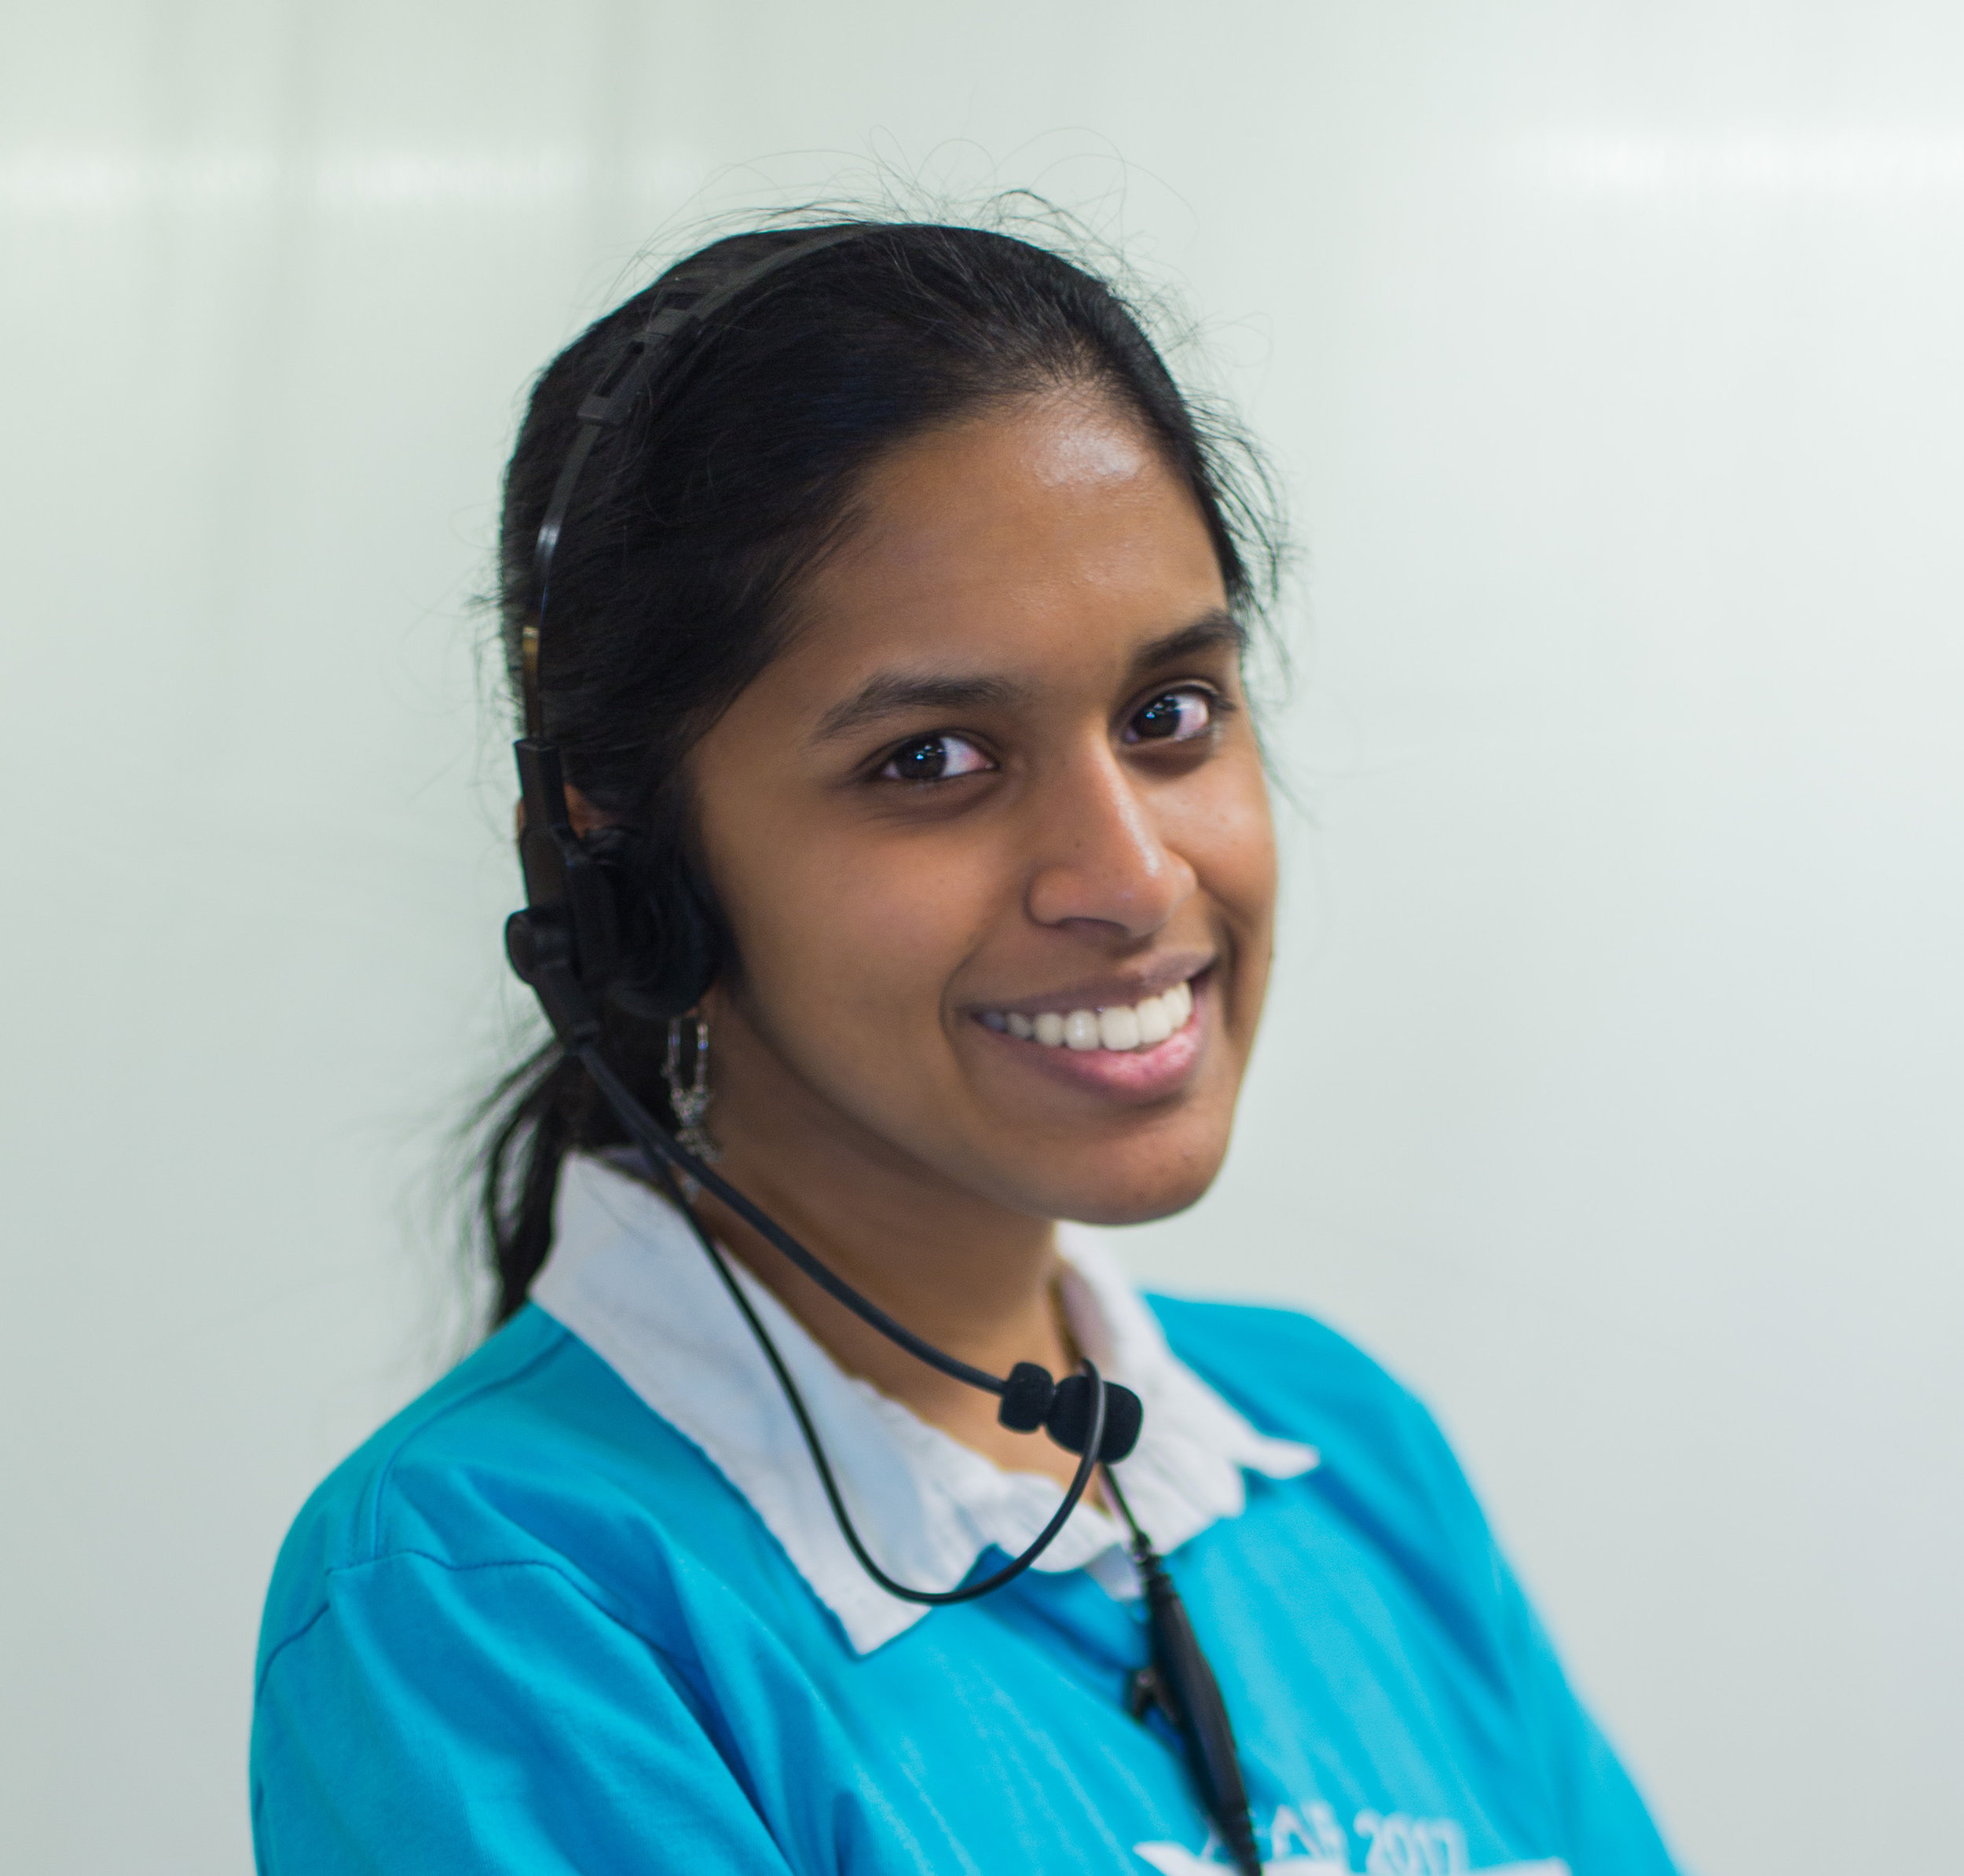 Dheekshita Kumar - Dheekshu is one of the first members of the LEAC team, and remains involved with campus energy reduction projects as well as designing the next version of the MASH alarm. Stay tuned!!EMAIL